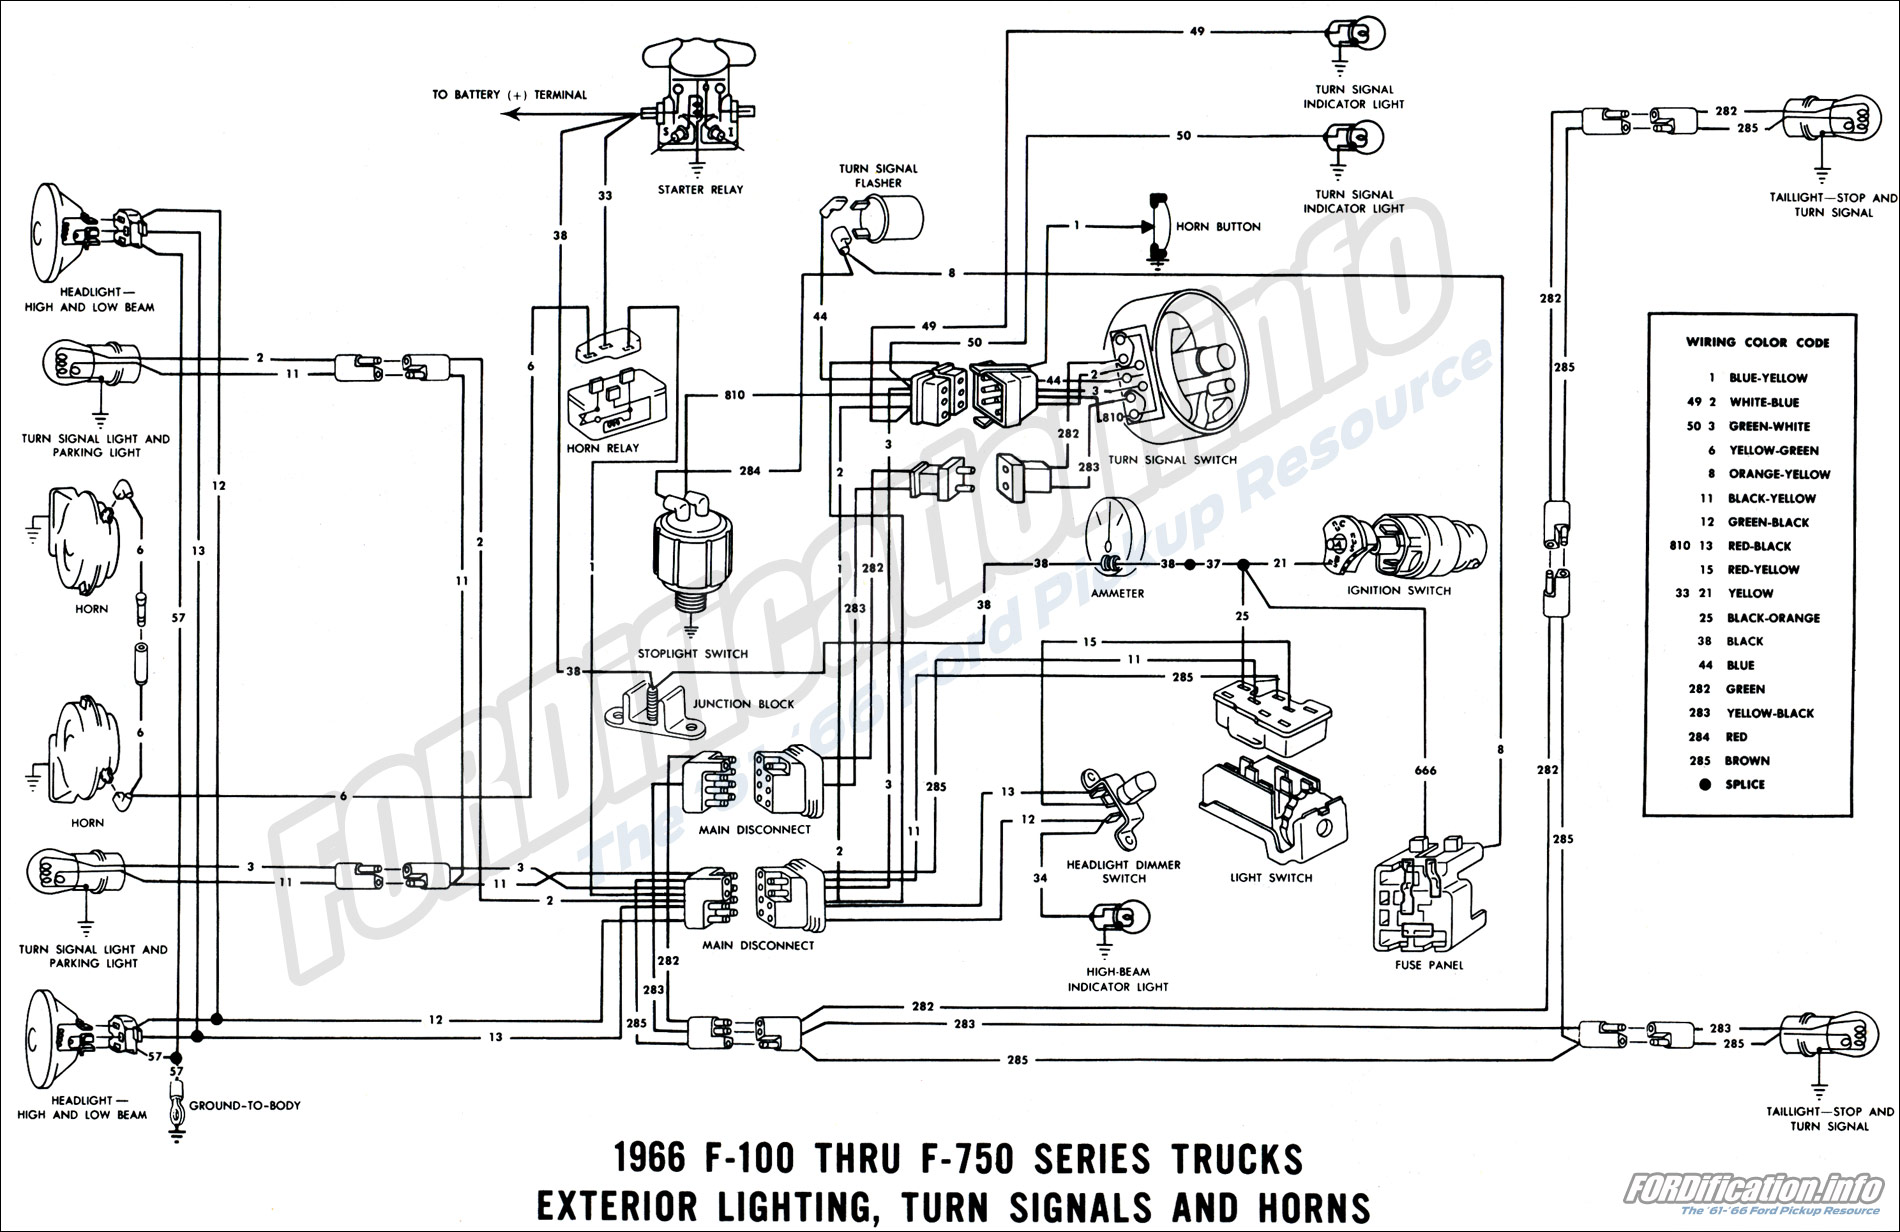 wiring diagram for 1968 ford f100 pick up wiring diagram for 66 ford f100 1966 ford truck wiring diagrams - fordification.info - the ... #5